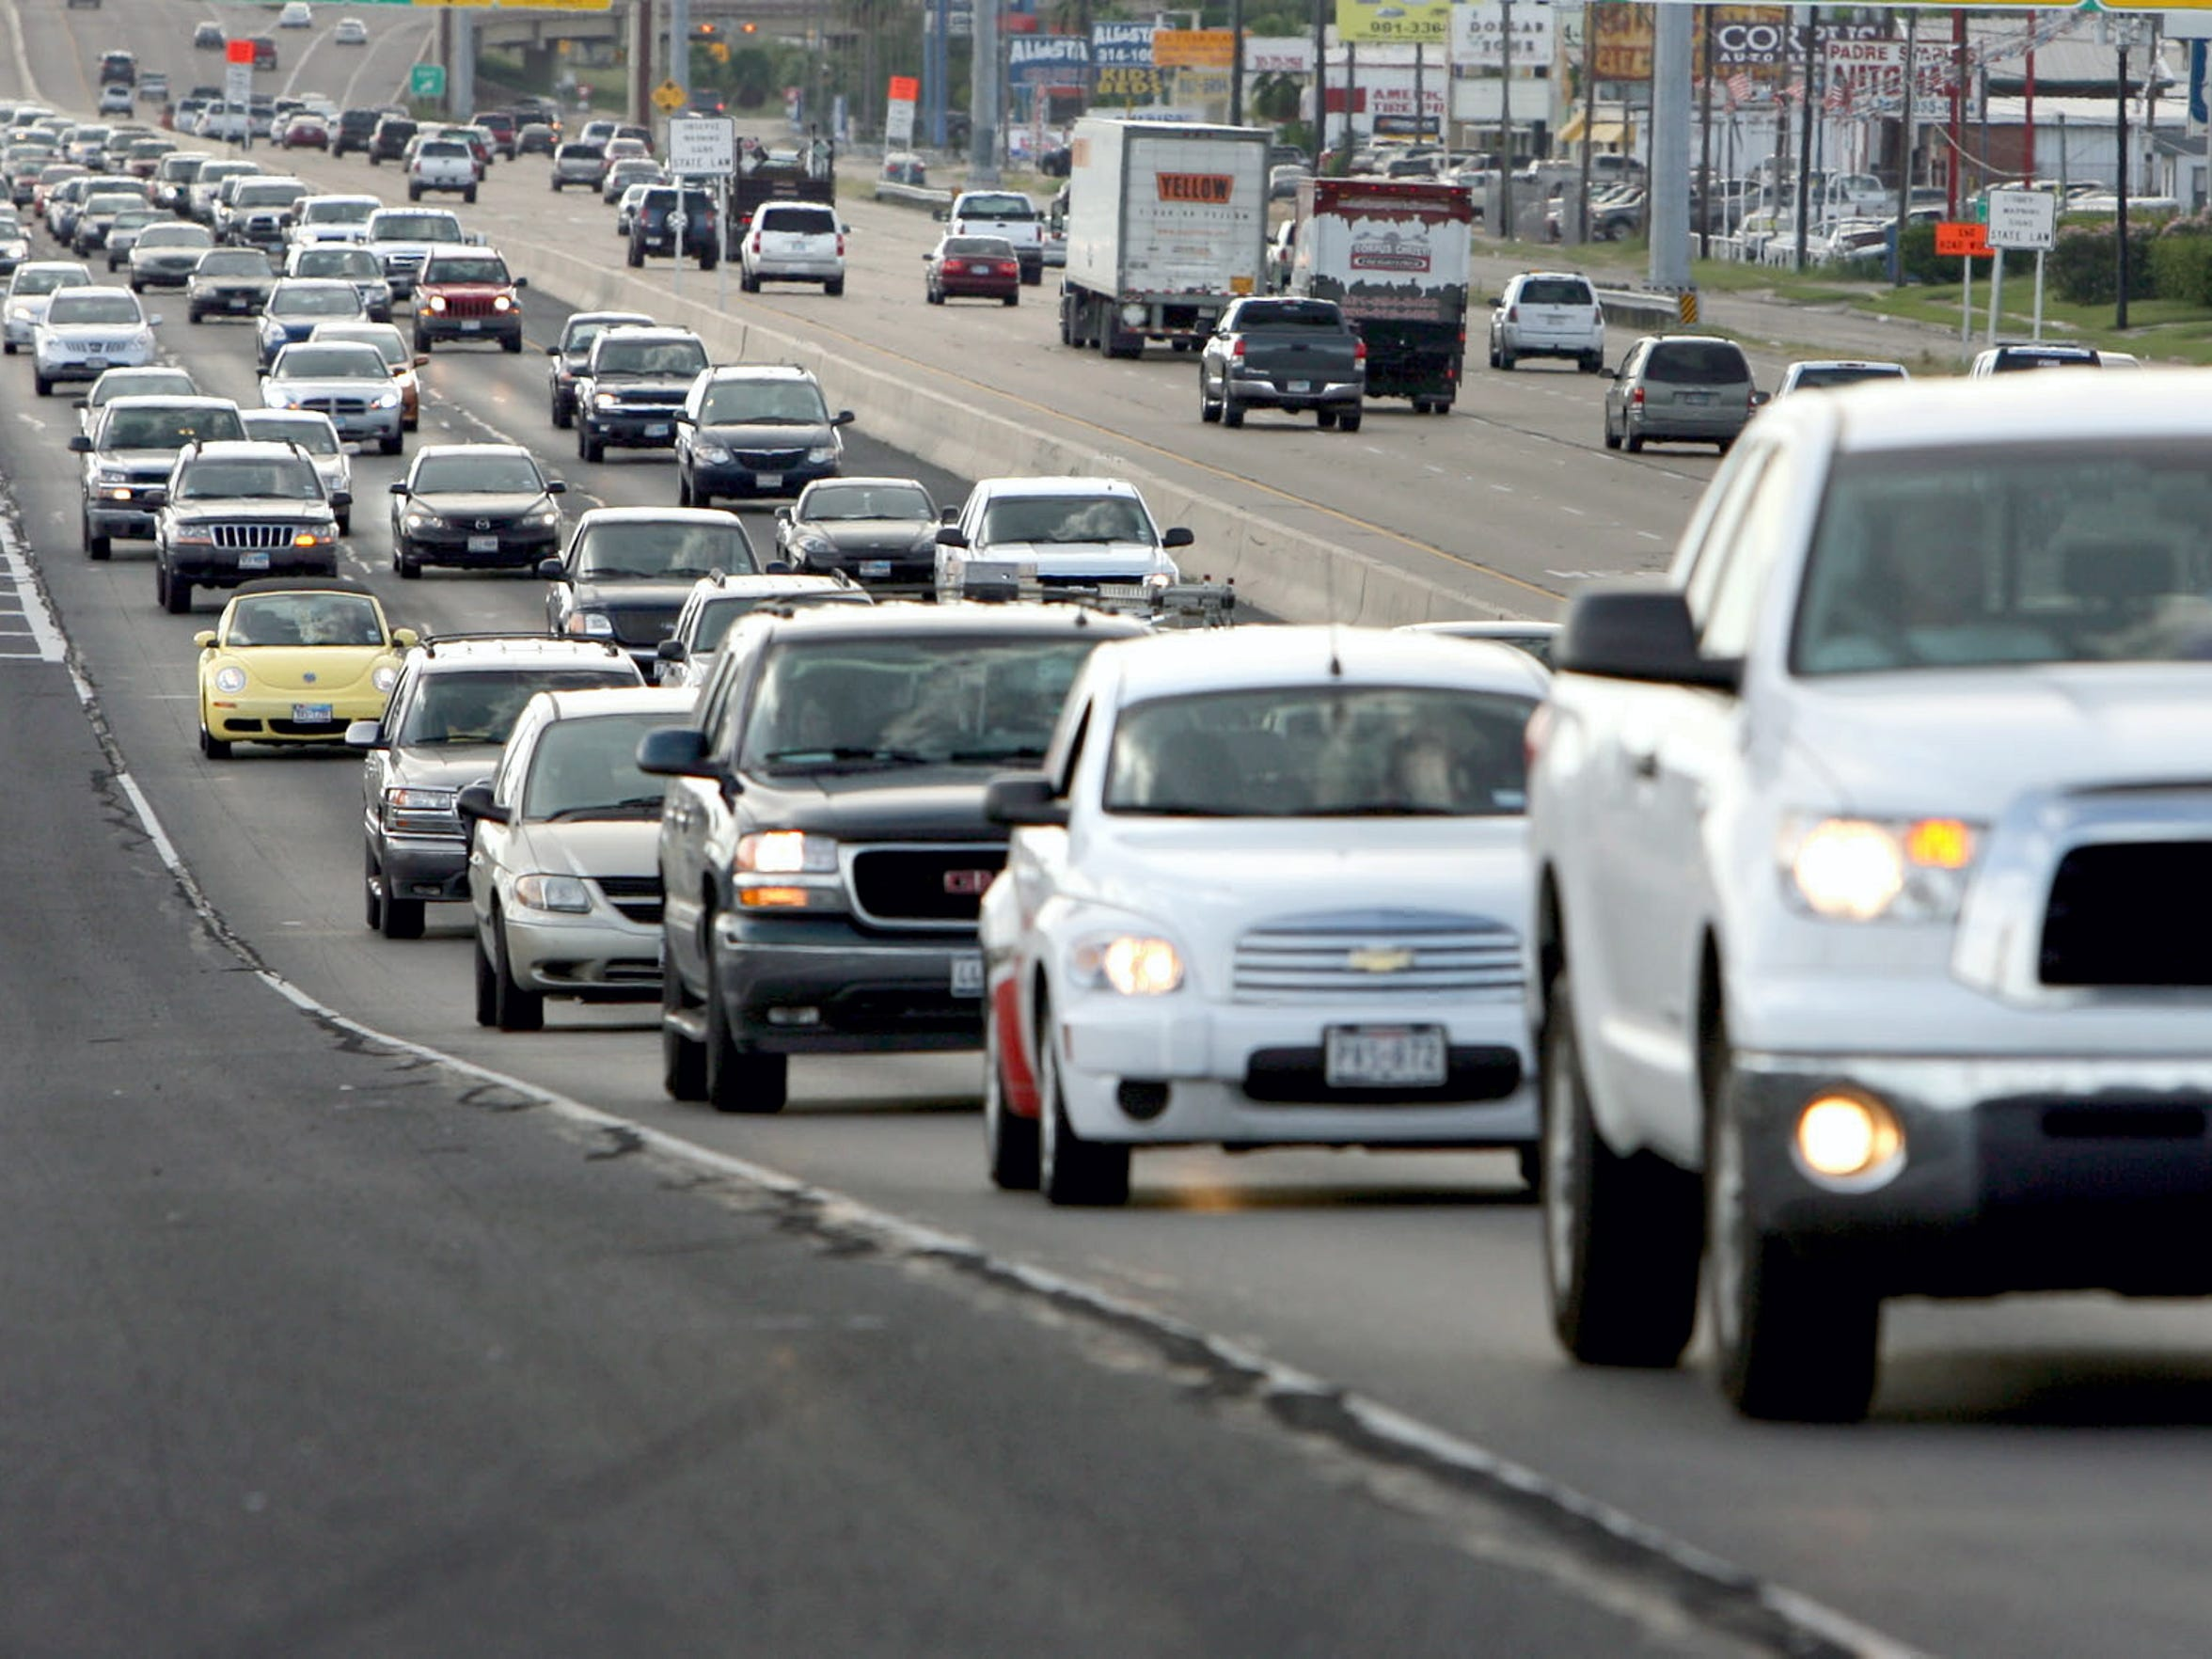 TODD YATES/CALLER-TIMES In this 2010 file photo, rush-hour traffic crowds South Padre Island Drive. The highway has become more congested over the years as more development springs up on the city's Southside.